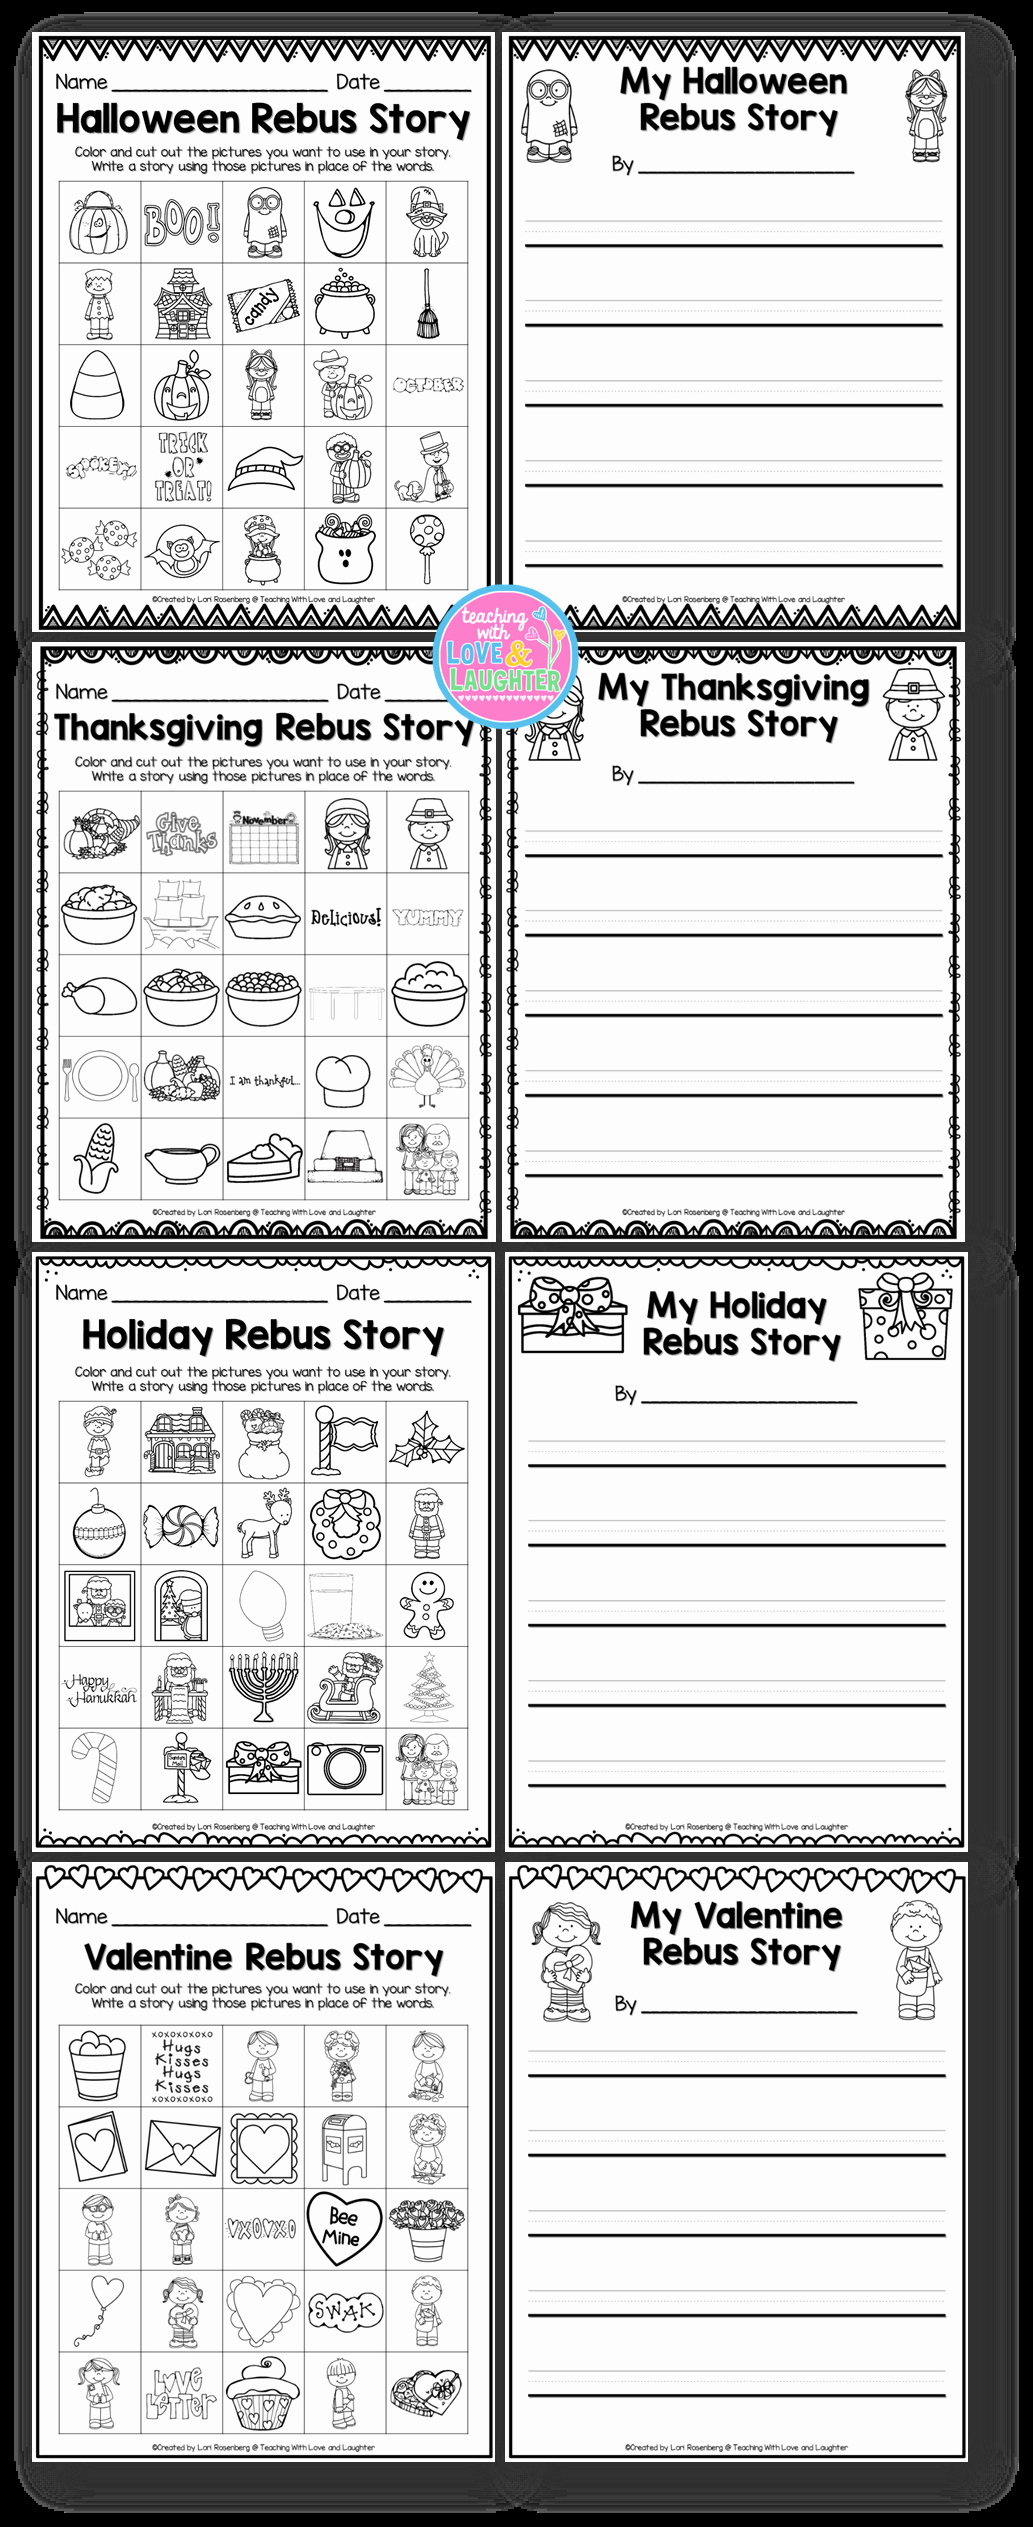 Rebus Story Worksheets Best Of Holiday Rebus Stories